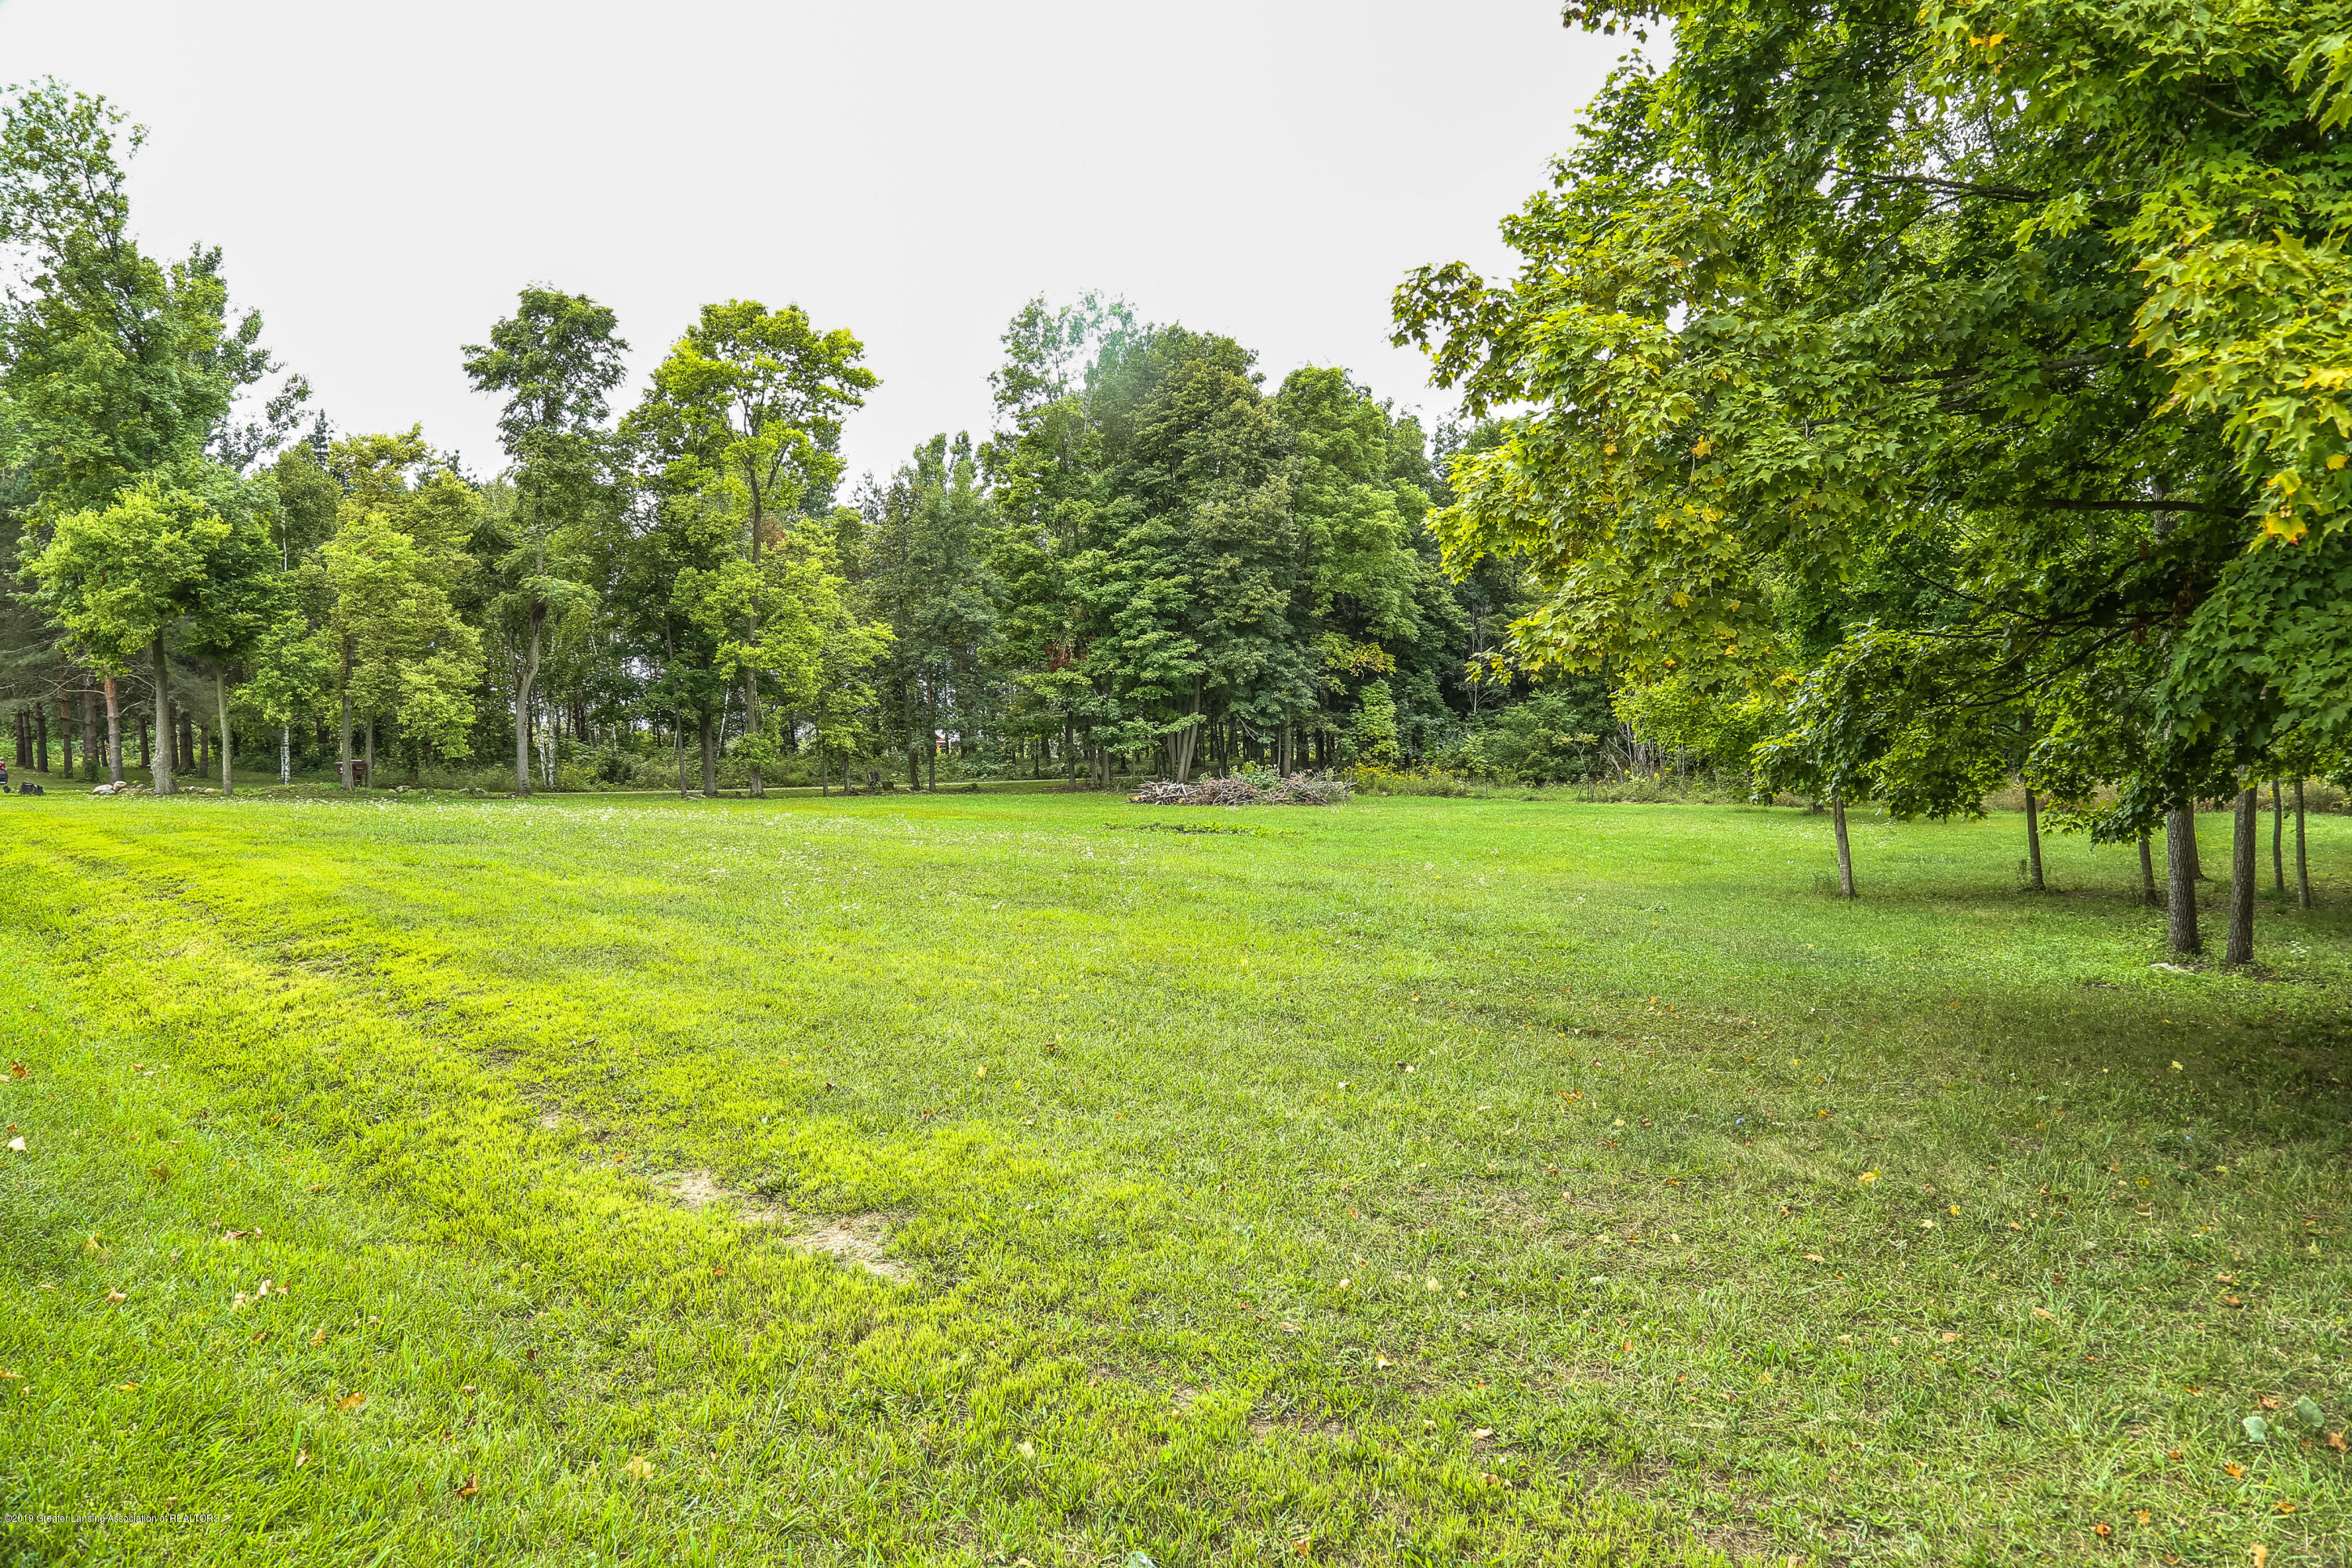 802 S Waverly Rd - Vacant Land - 2